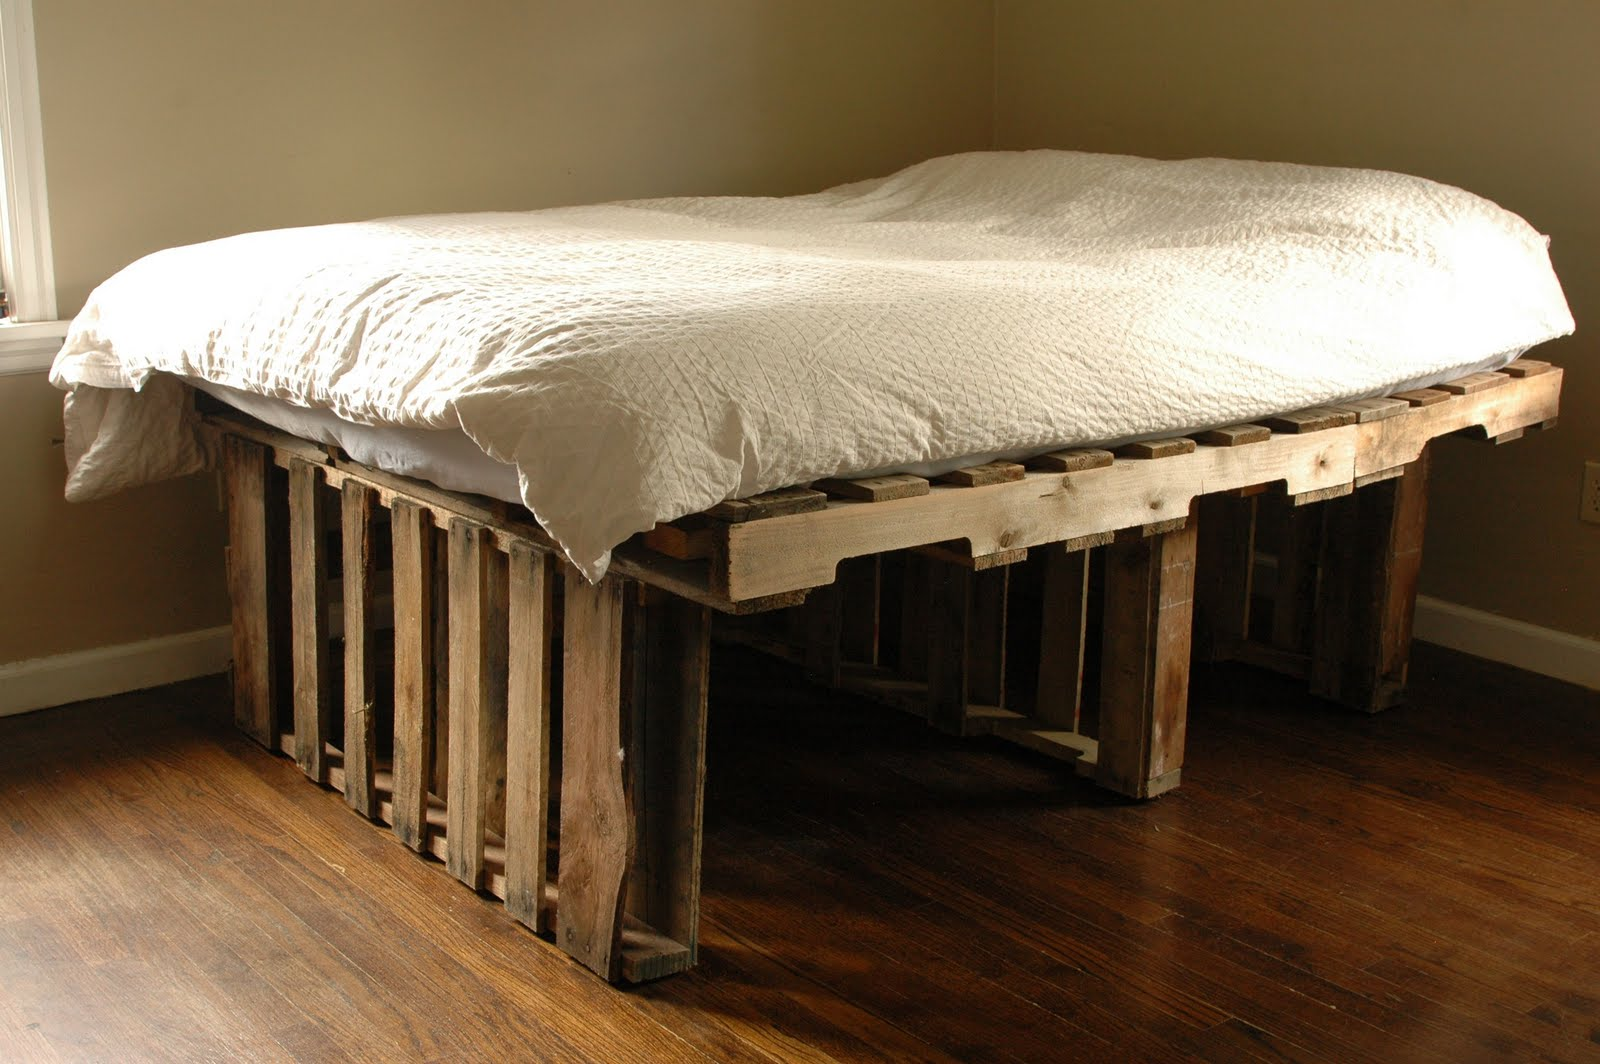 How To Build A Platform Bed With Pallets | Search Results | DIY ...